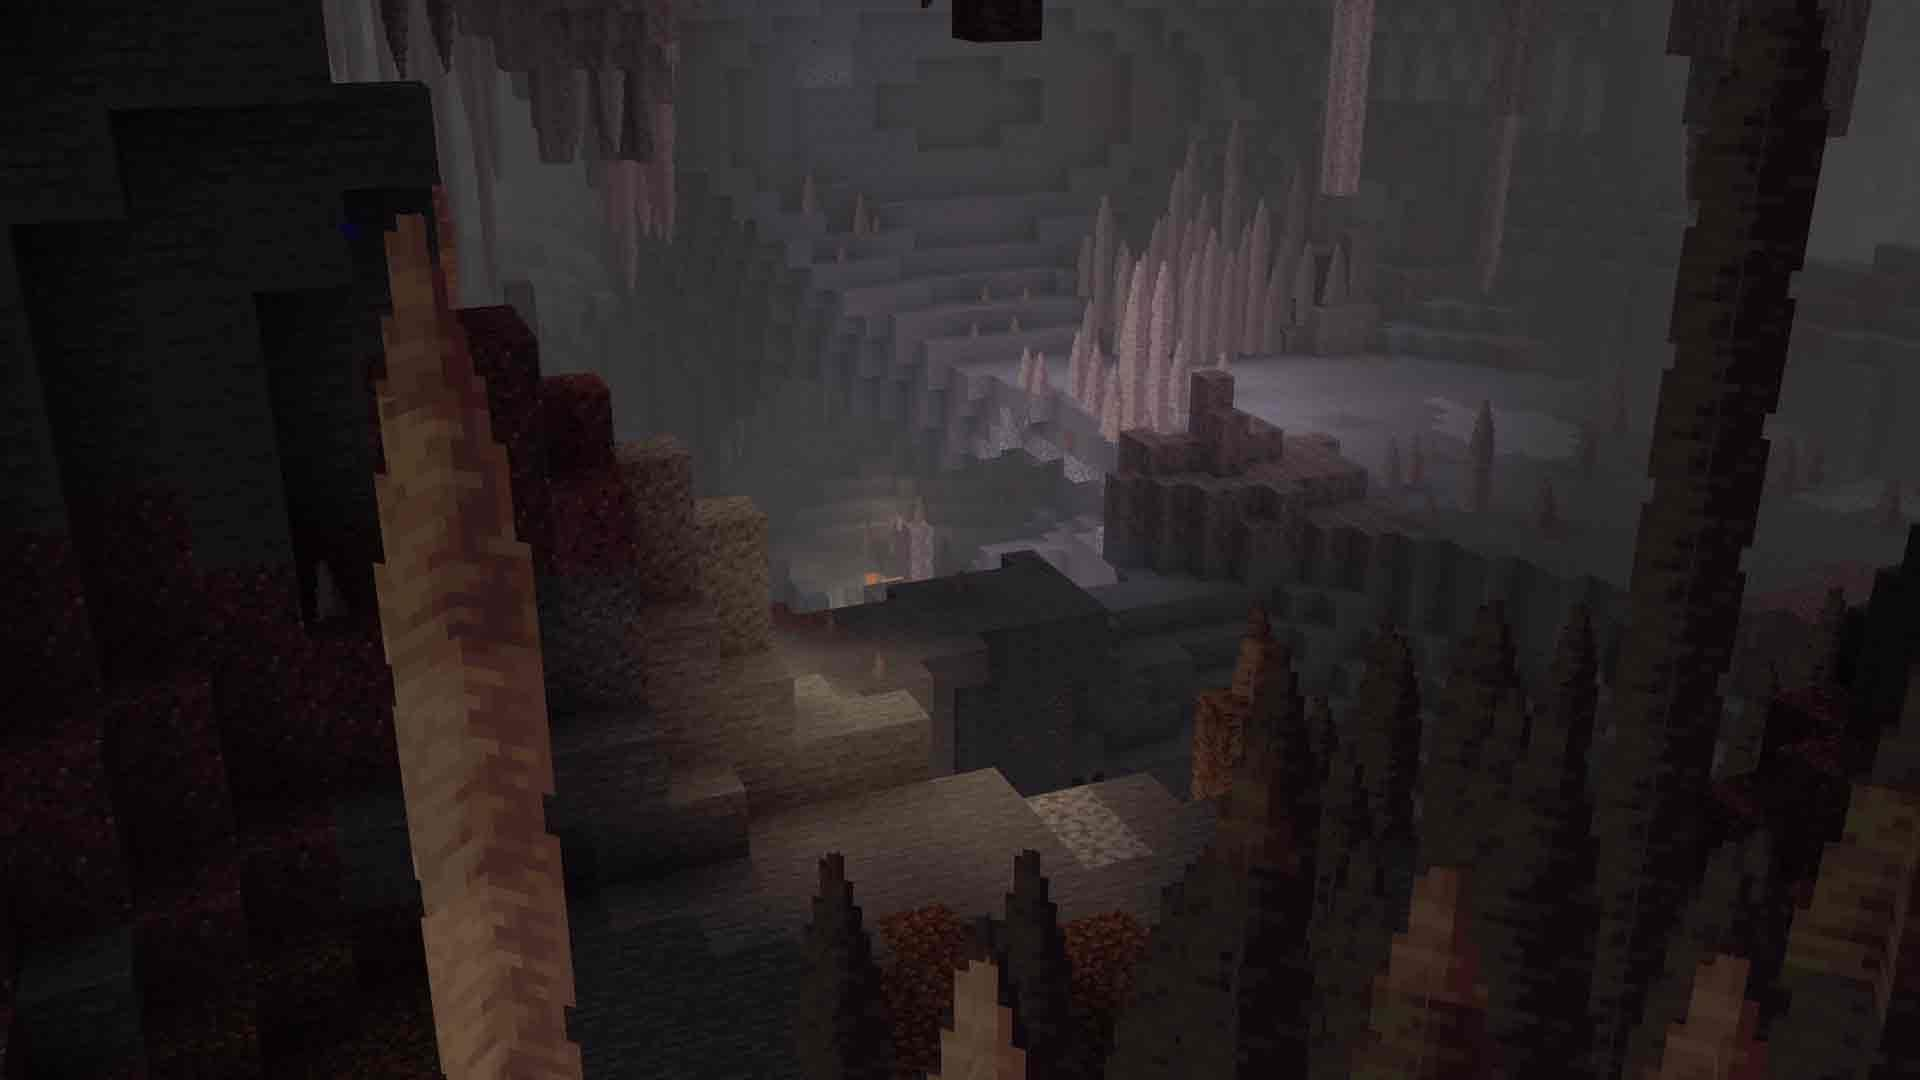 Minecraft's Caves and Cliffs Update Arrives in 2021